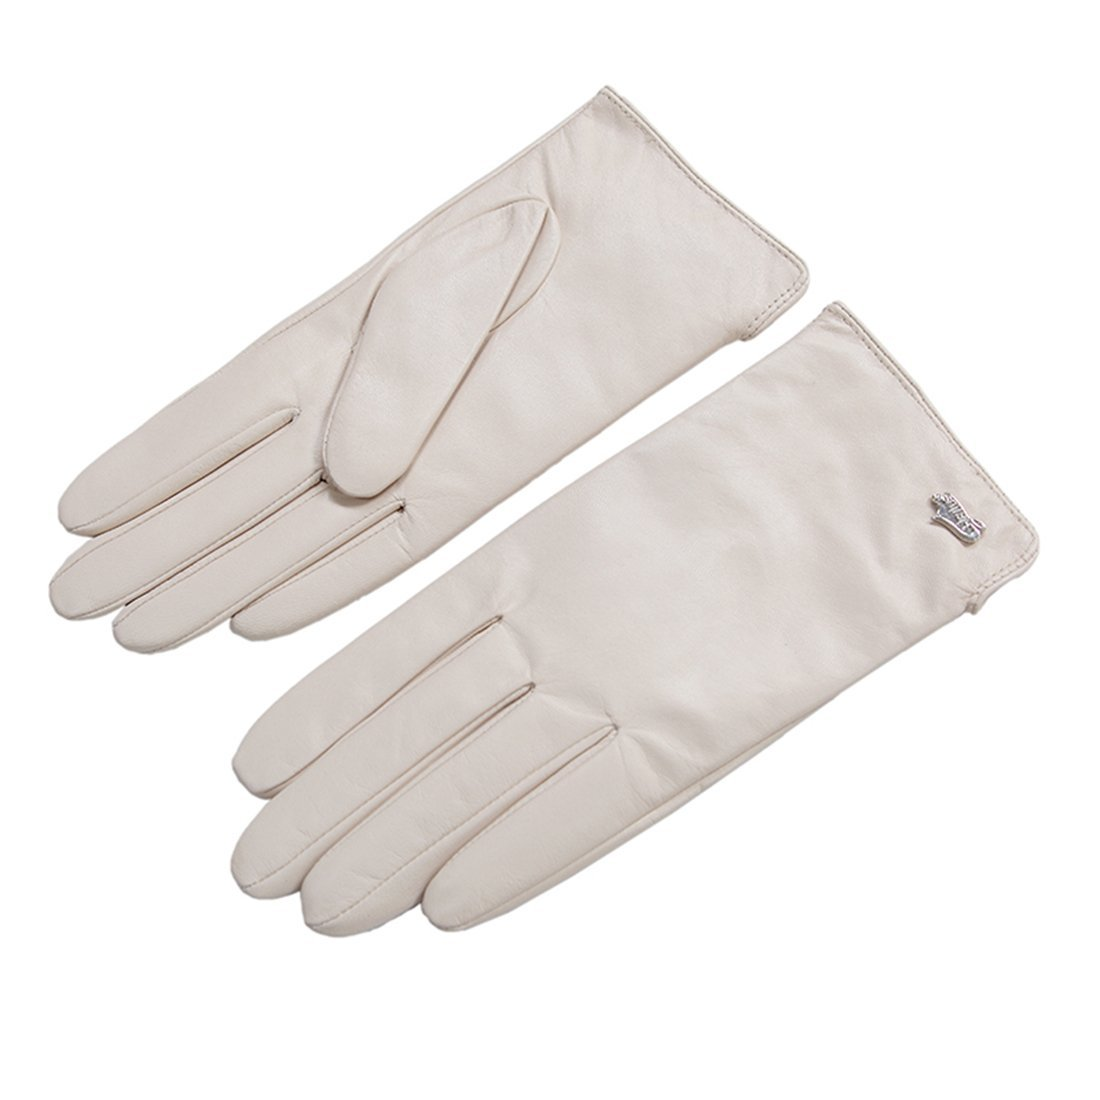 Nappaglo Nappa Leather Gloves Warm Lining Winter Multicolor Imported Leather Lambskin Gloves for Women (S, Beige)